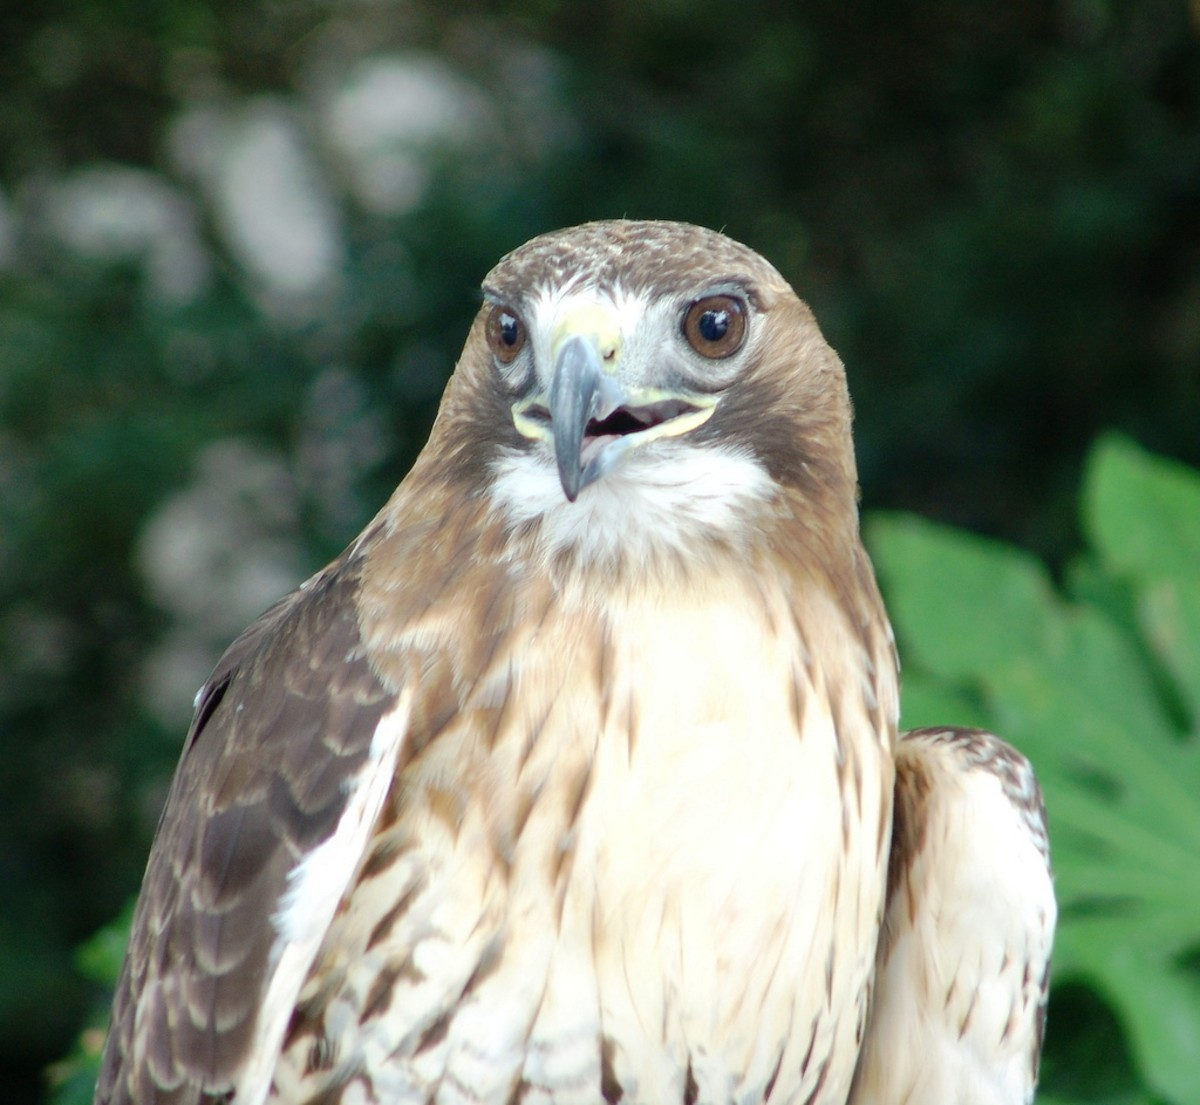 Red-Tailed Hawk at the Virginia Zoological Park in Norfolk, VA